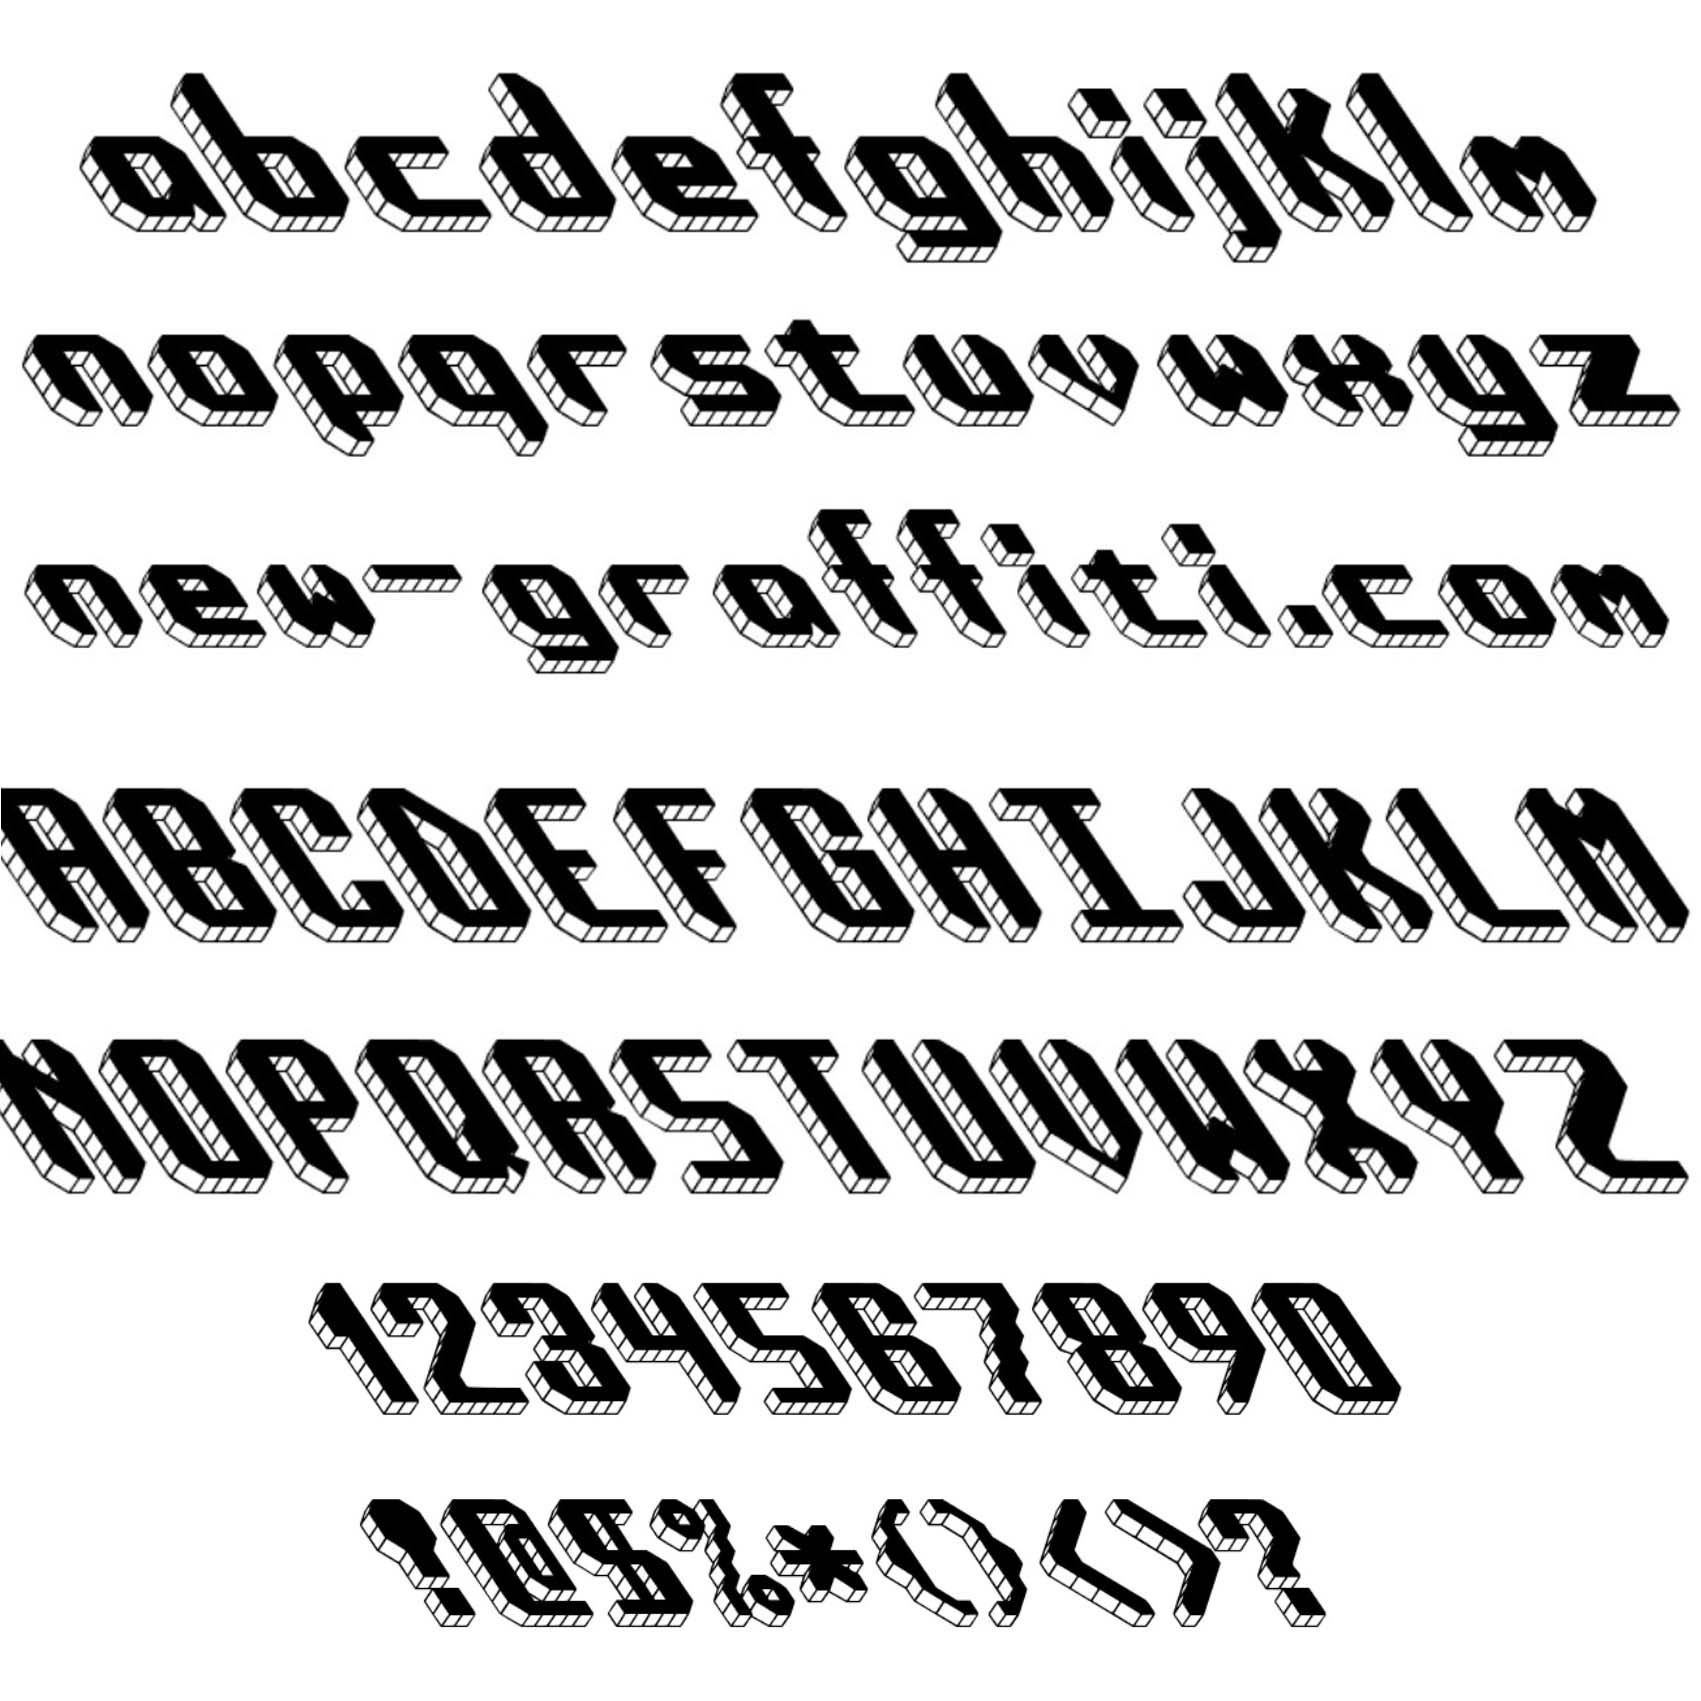 15 3d Graffiti Number Fonts Images